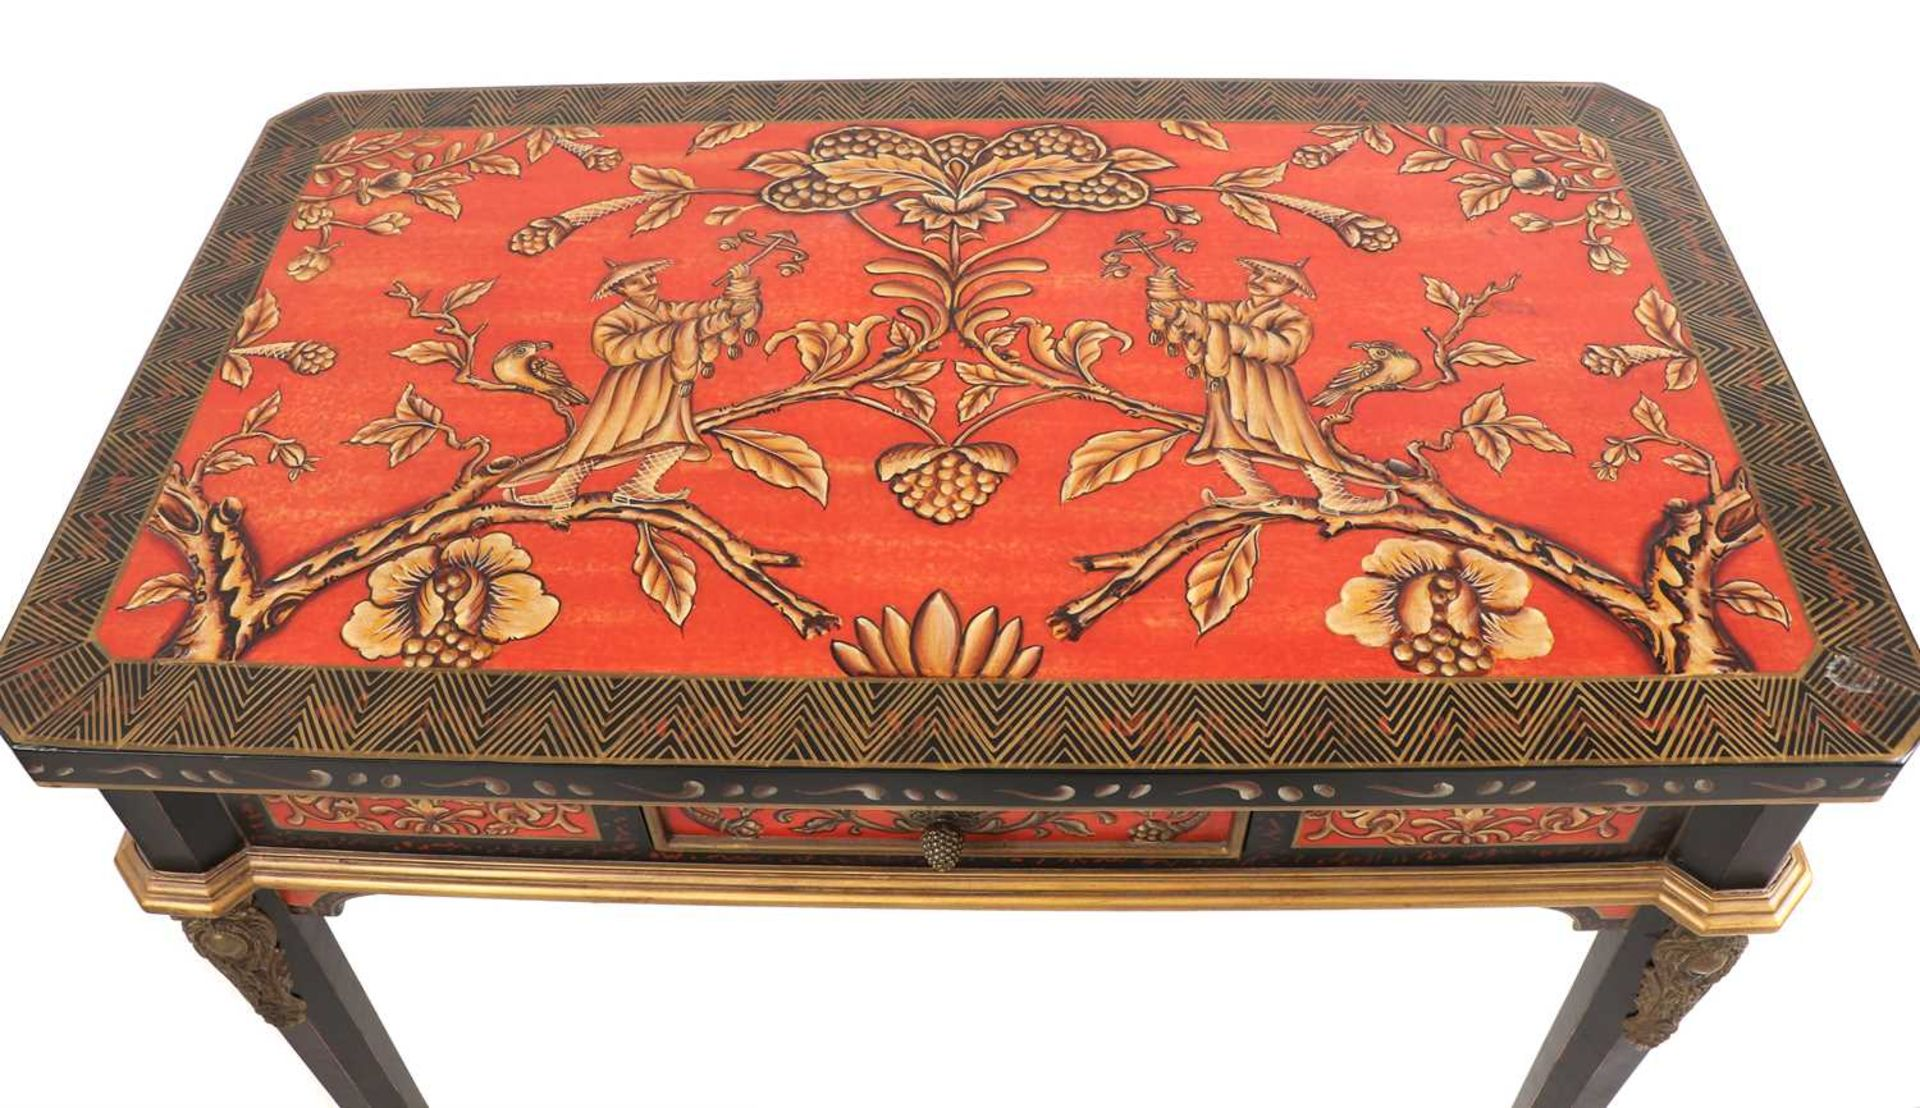 A pair of Napoleon III-style lacquered chinoiserie side tables, - Image 7 of 10